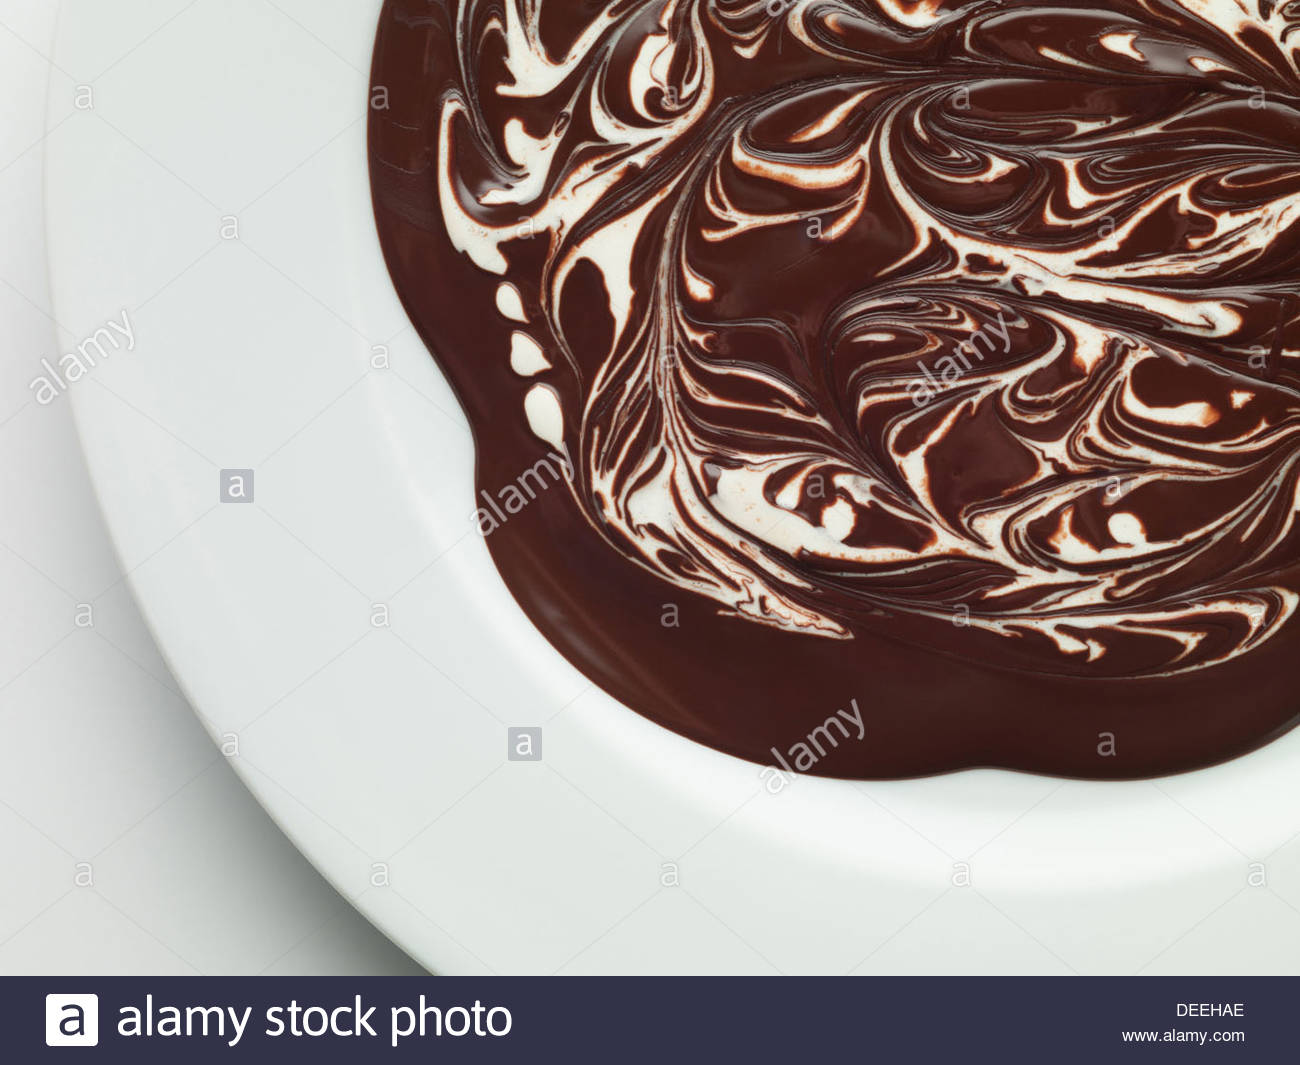 Bowl of melted chocolate - Stock Image